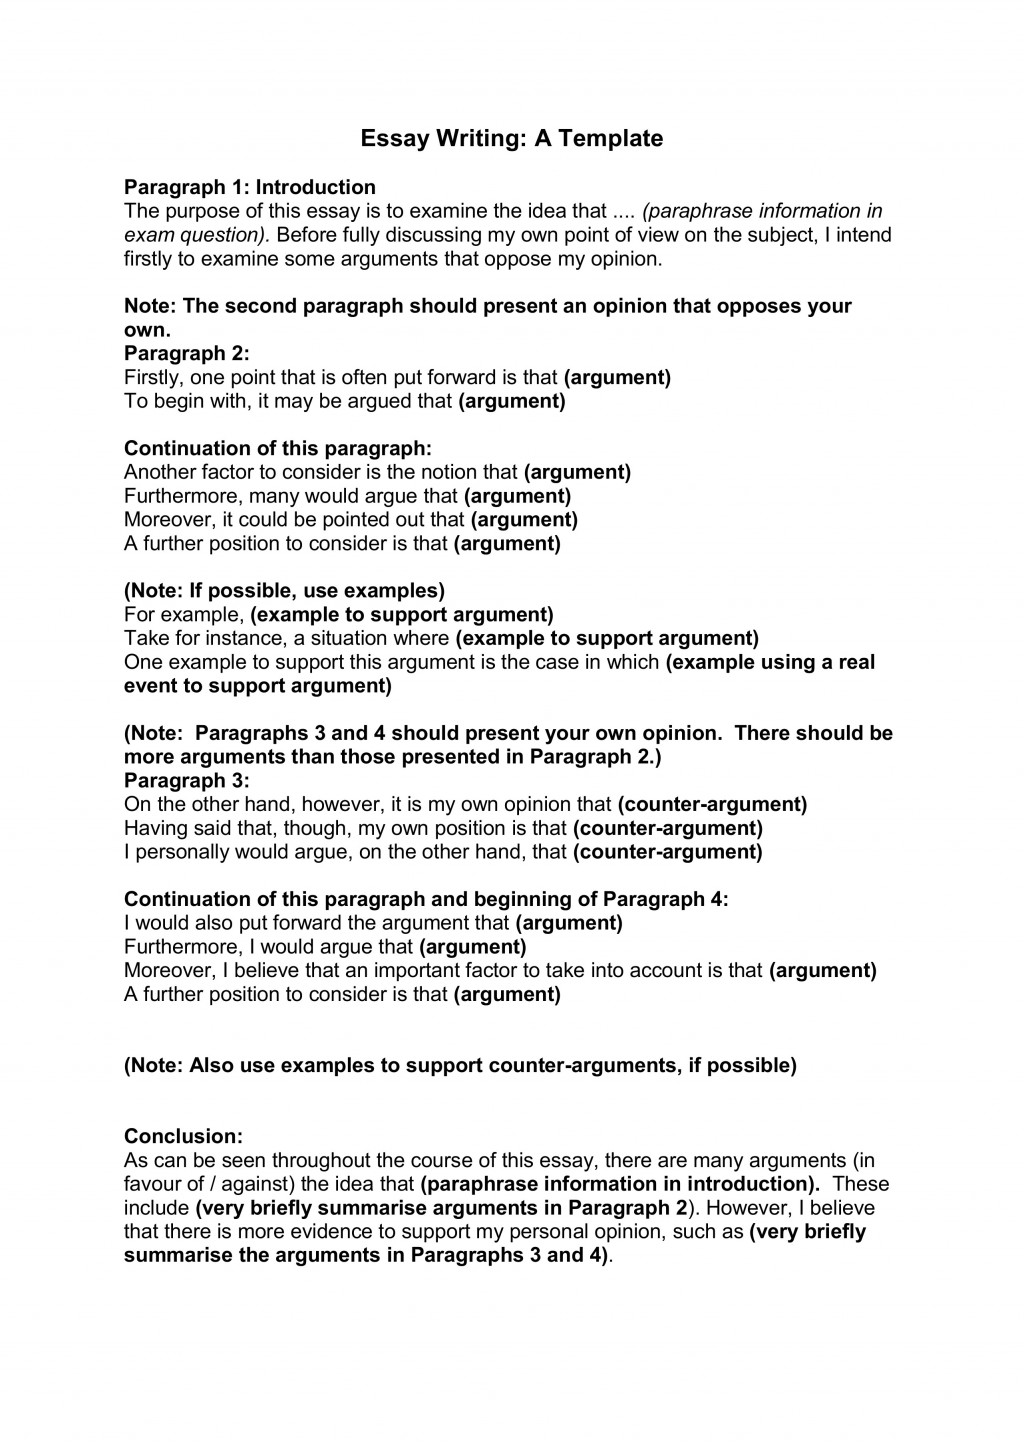 025 Essay Writing Template For Part How Many Sentences Are In Best A 5 Paragraph Short Large